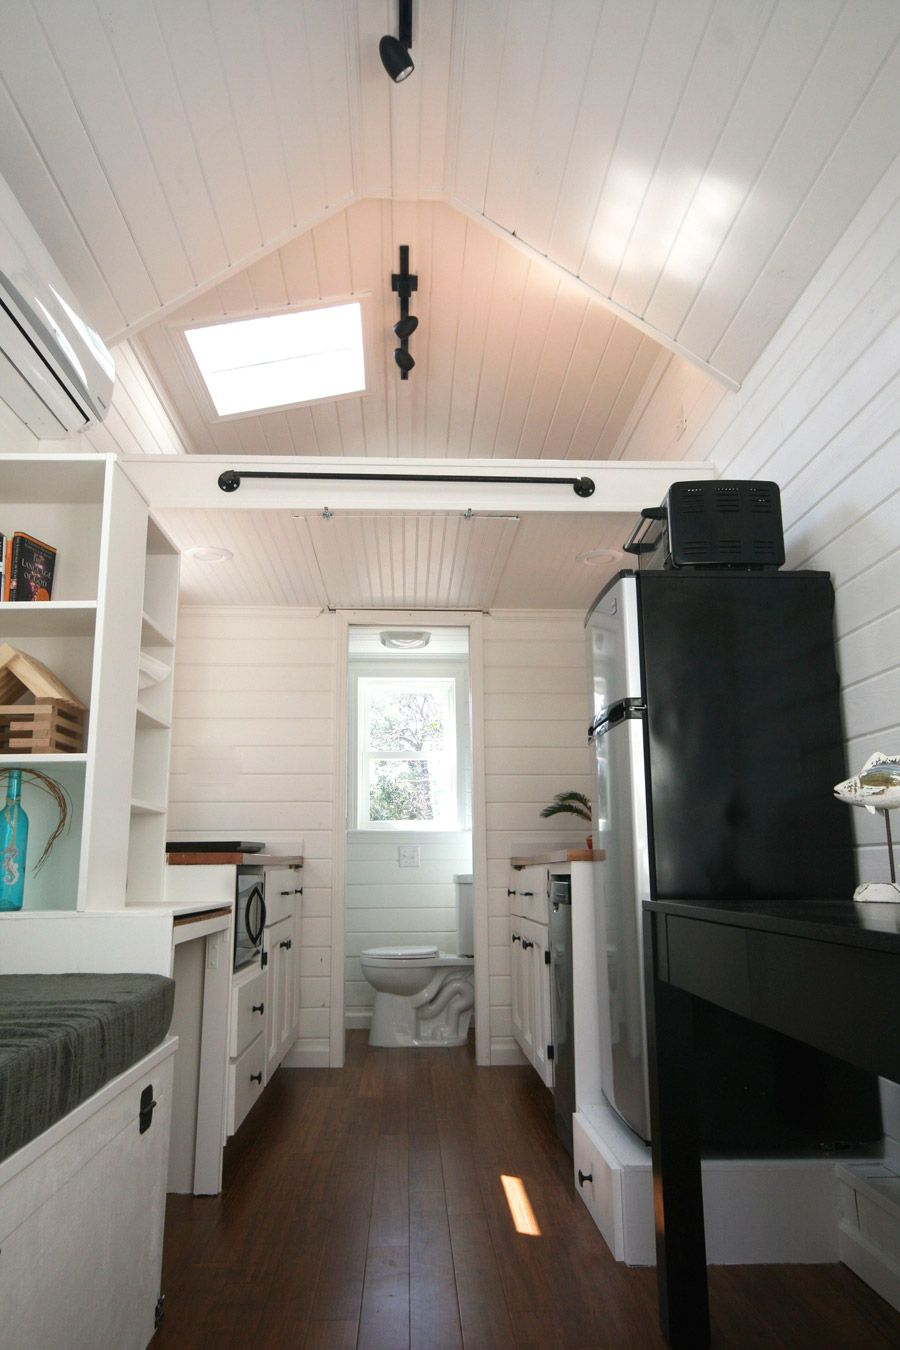 160 Square Foot Tiny House (as Tiny As It Is, It Still Has A Washer/dryer,  Shower, Bathtub, Full Fridge, Microwave, And More!)